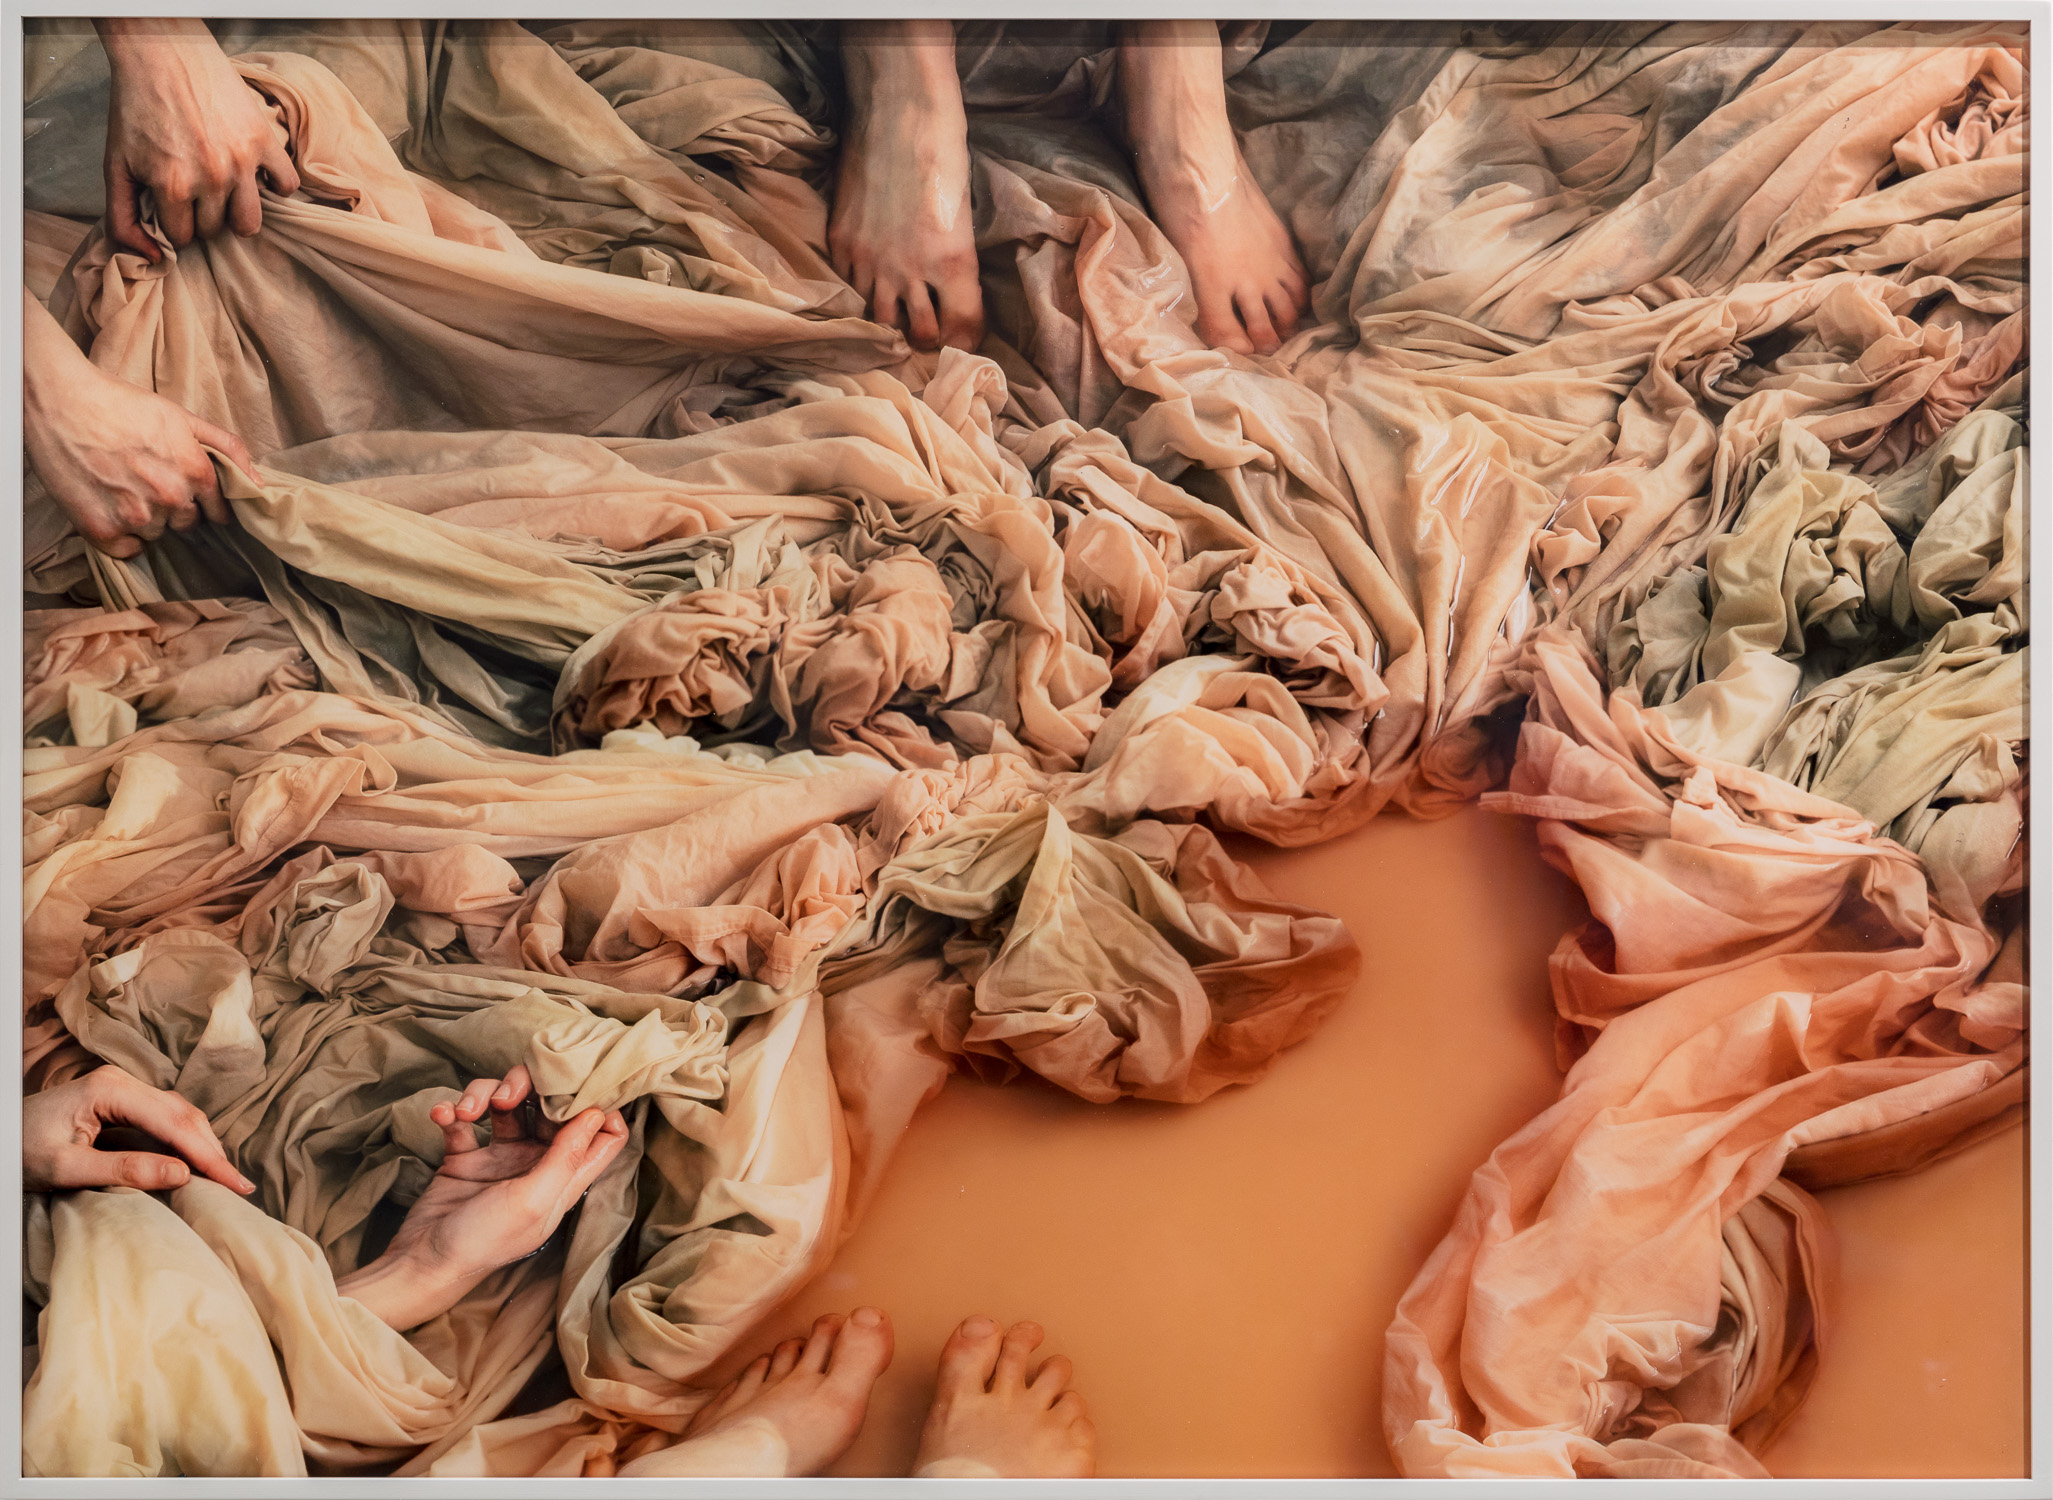 The Washing I, 2018, Diasec mounted inkjet print, acrylic glass, grey frame, 71 x 97 cm, edition of 5. Photo: kunst.dokumentation.com